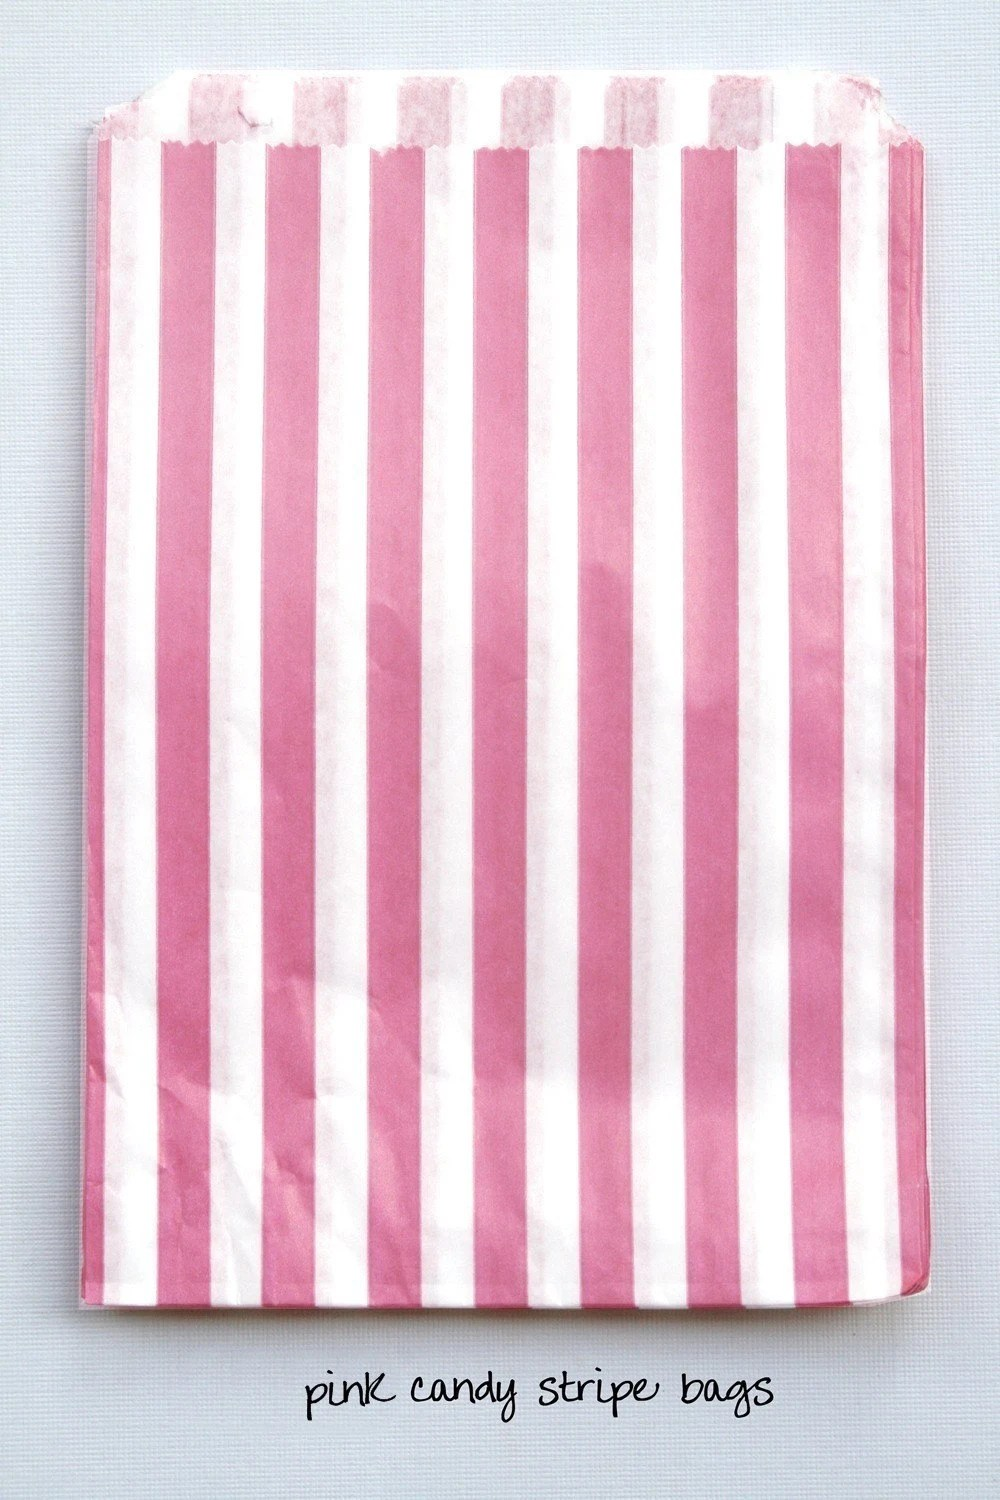 Set of 50 - Traditional Sweet Shop Bright Pink Candy Stripe Paper Bags - 5 x 7 or 5 x 6